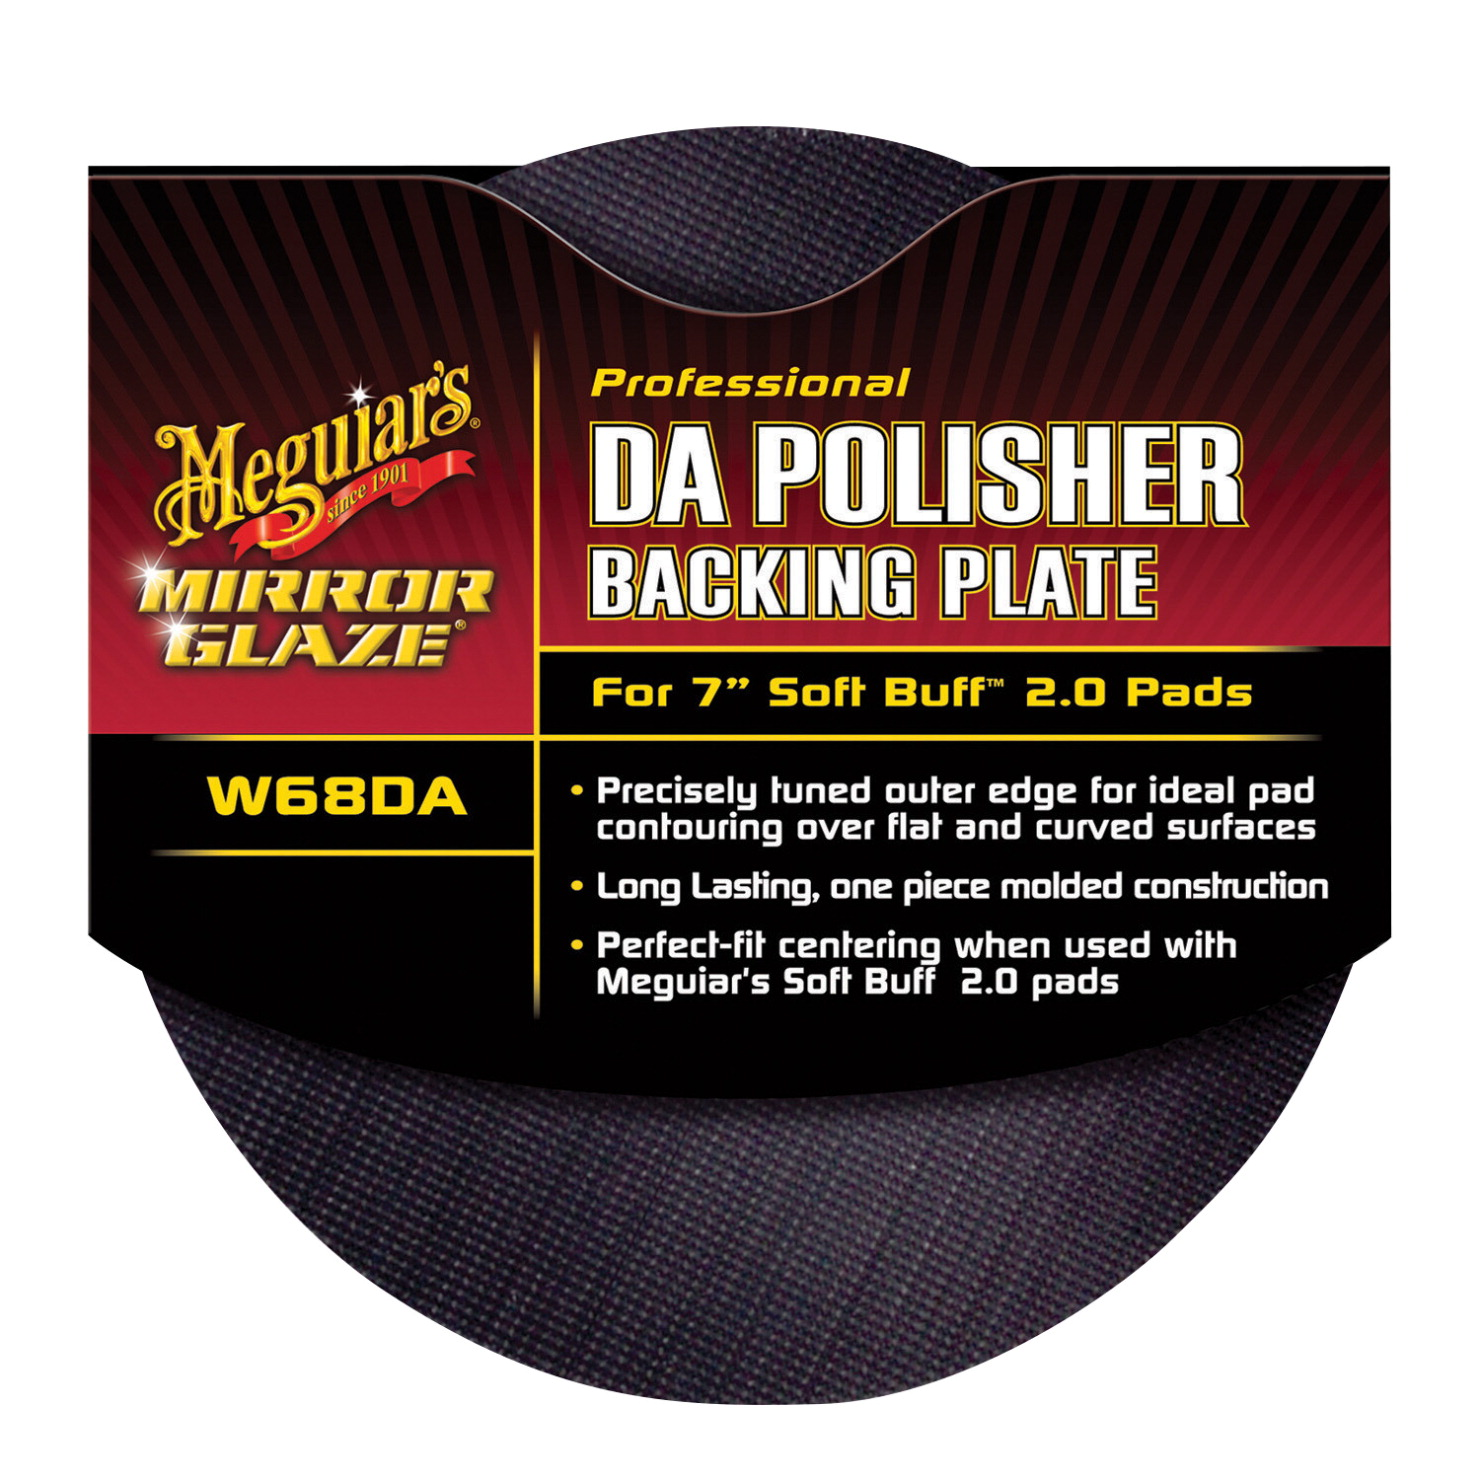 Meguiars Soft Buff/Backing Plate